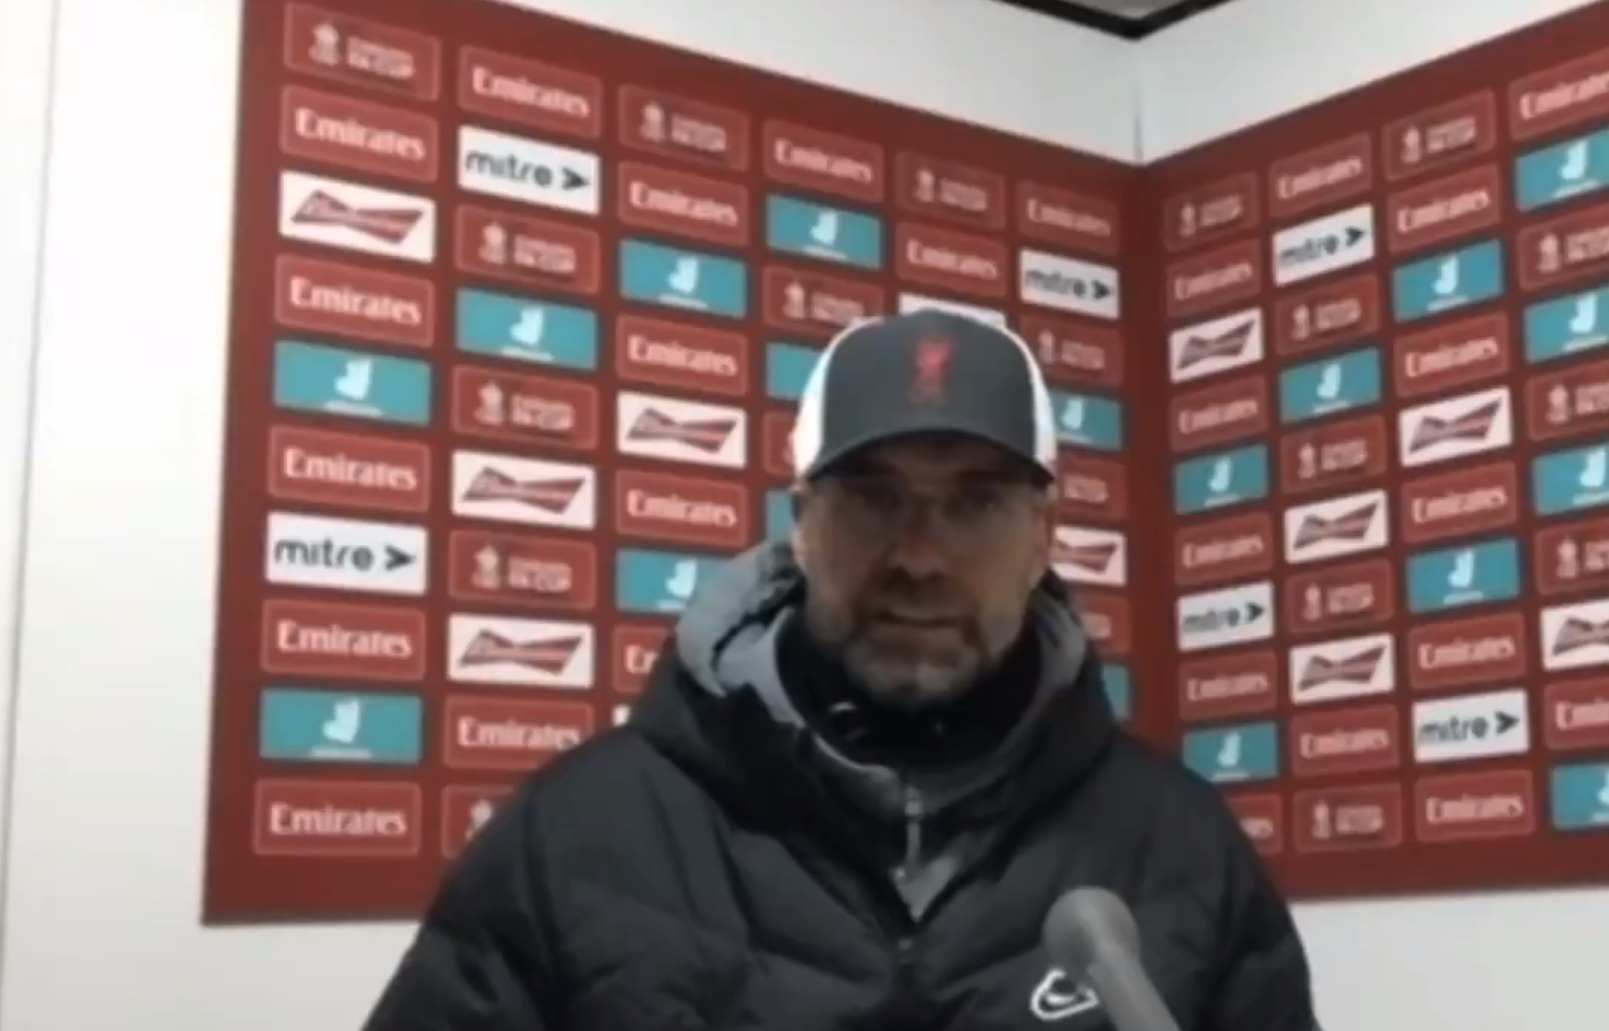 (Video) Klopp responds to questions over LFC confidence: 'It's all about how you deal with it'